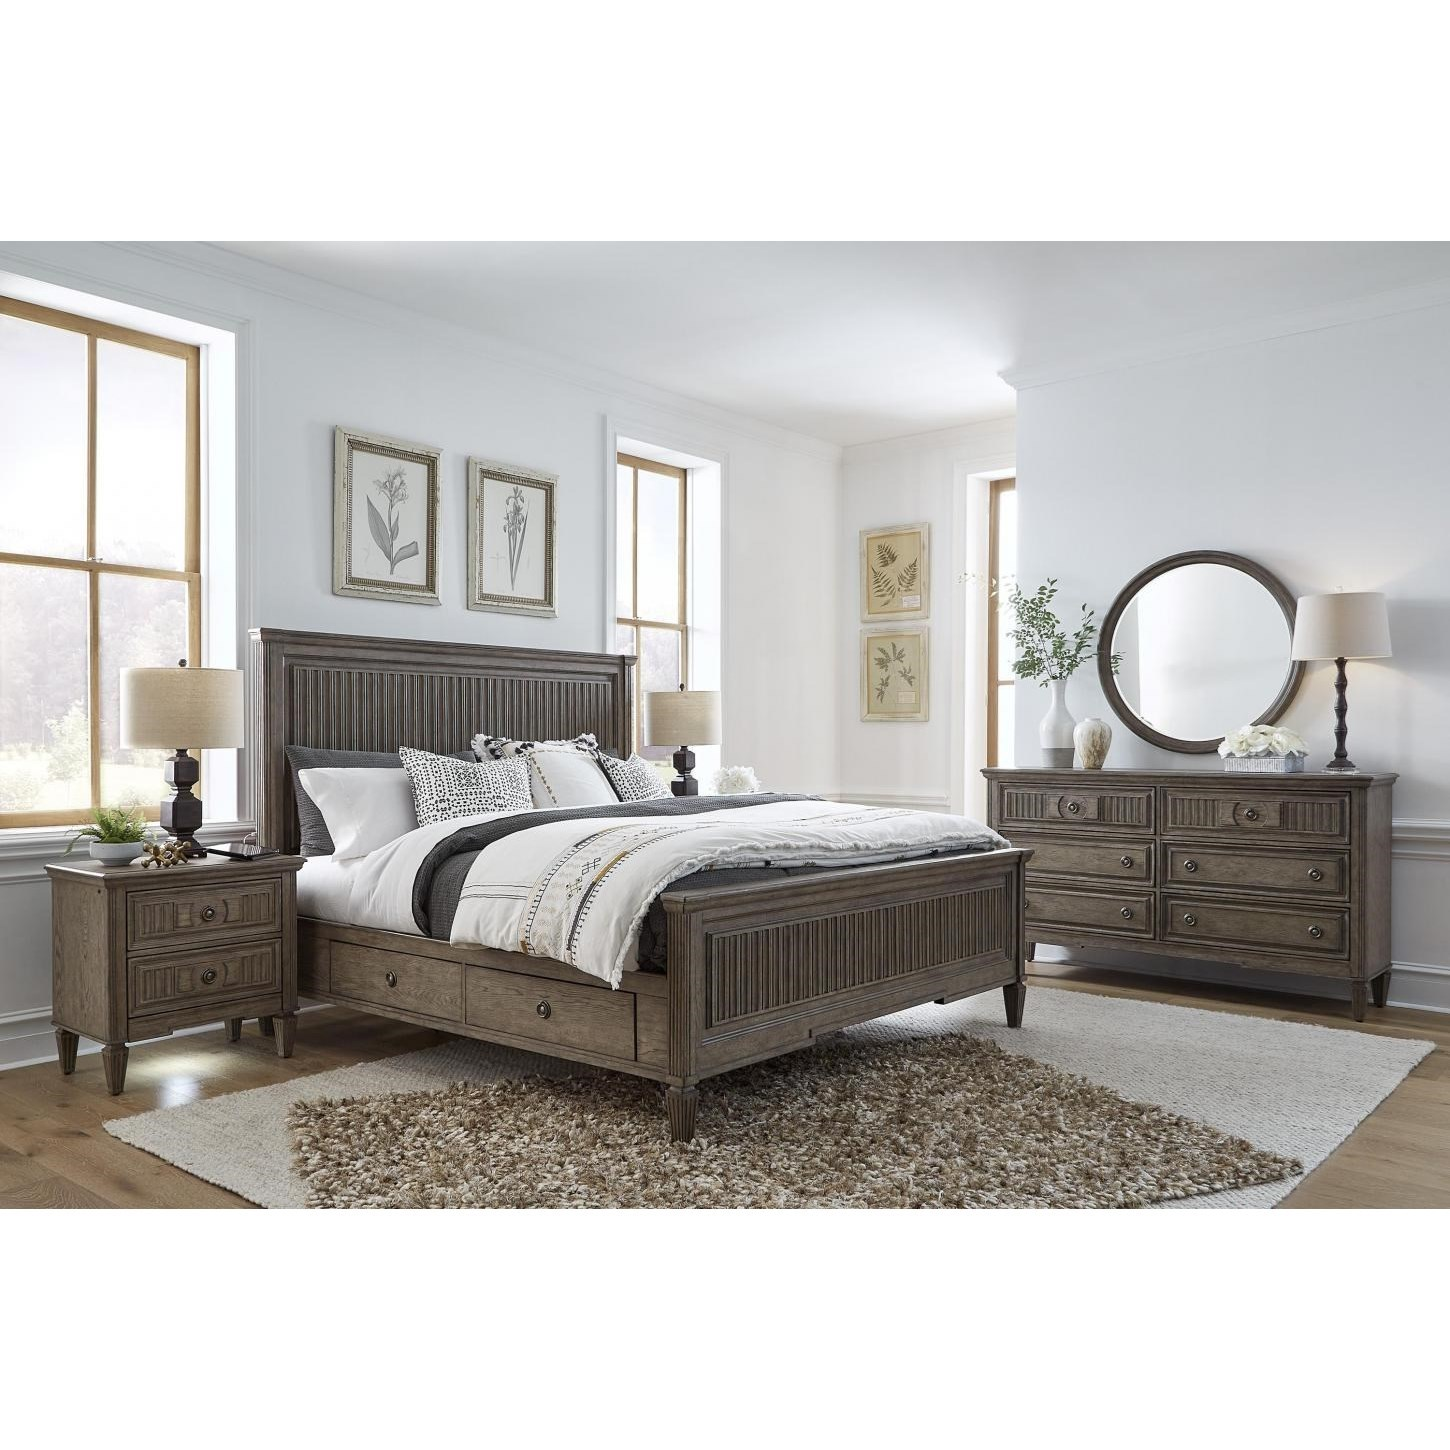 Strasbourg Queen Storage Bed Bedroom Group by Aspenhome at Baer's Furniture